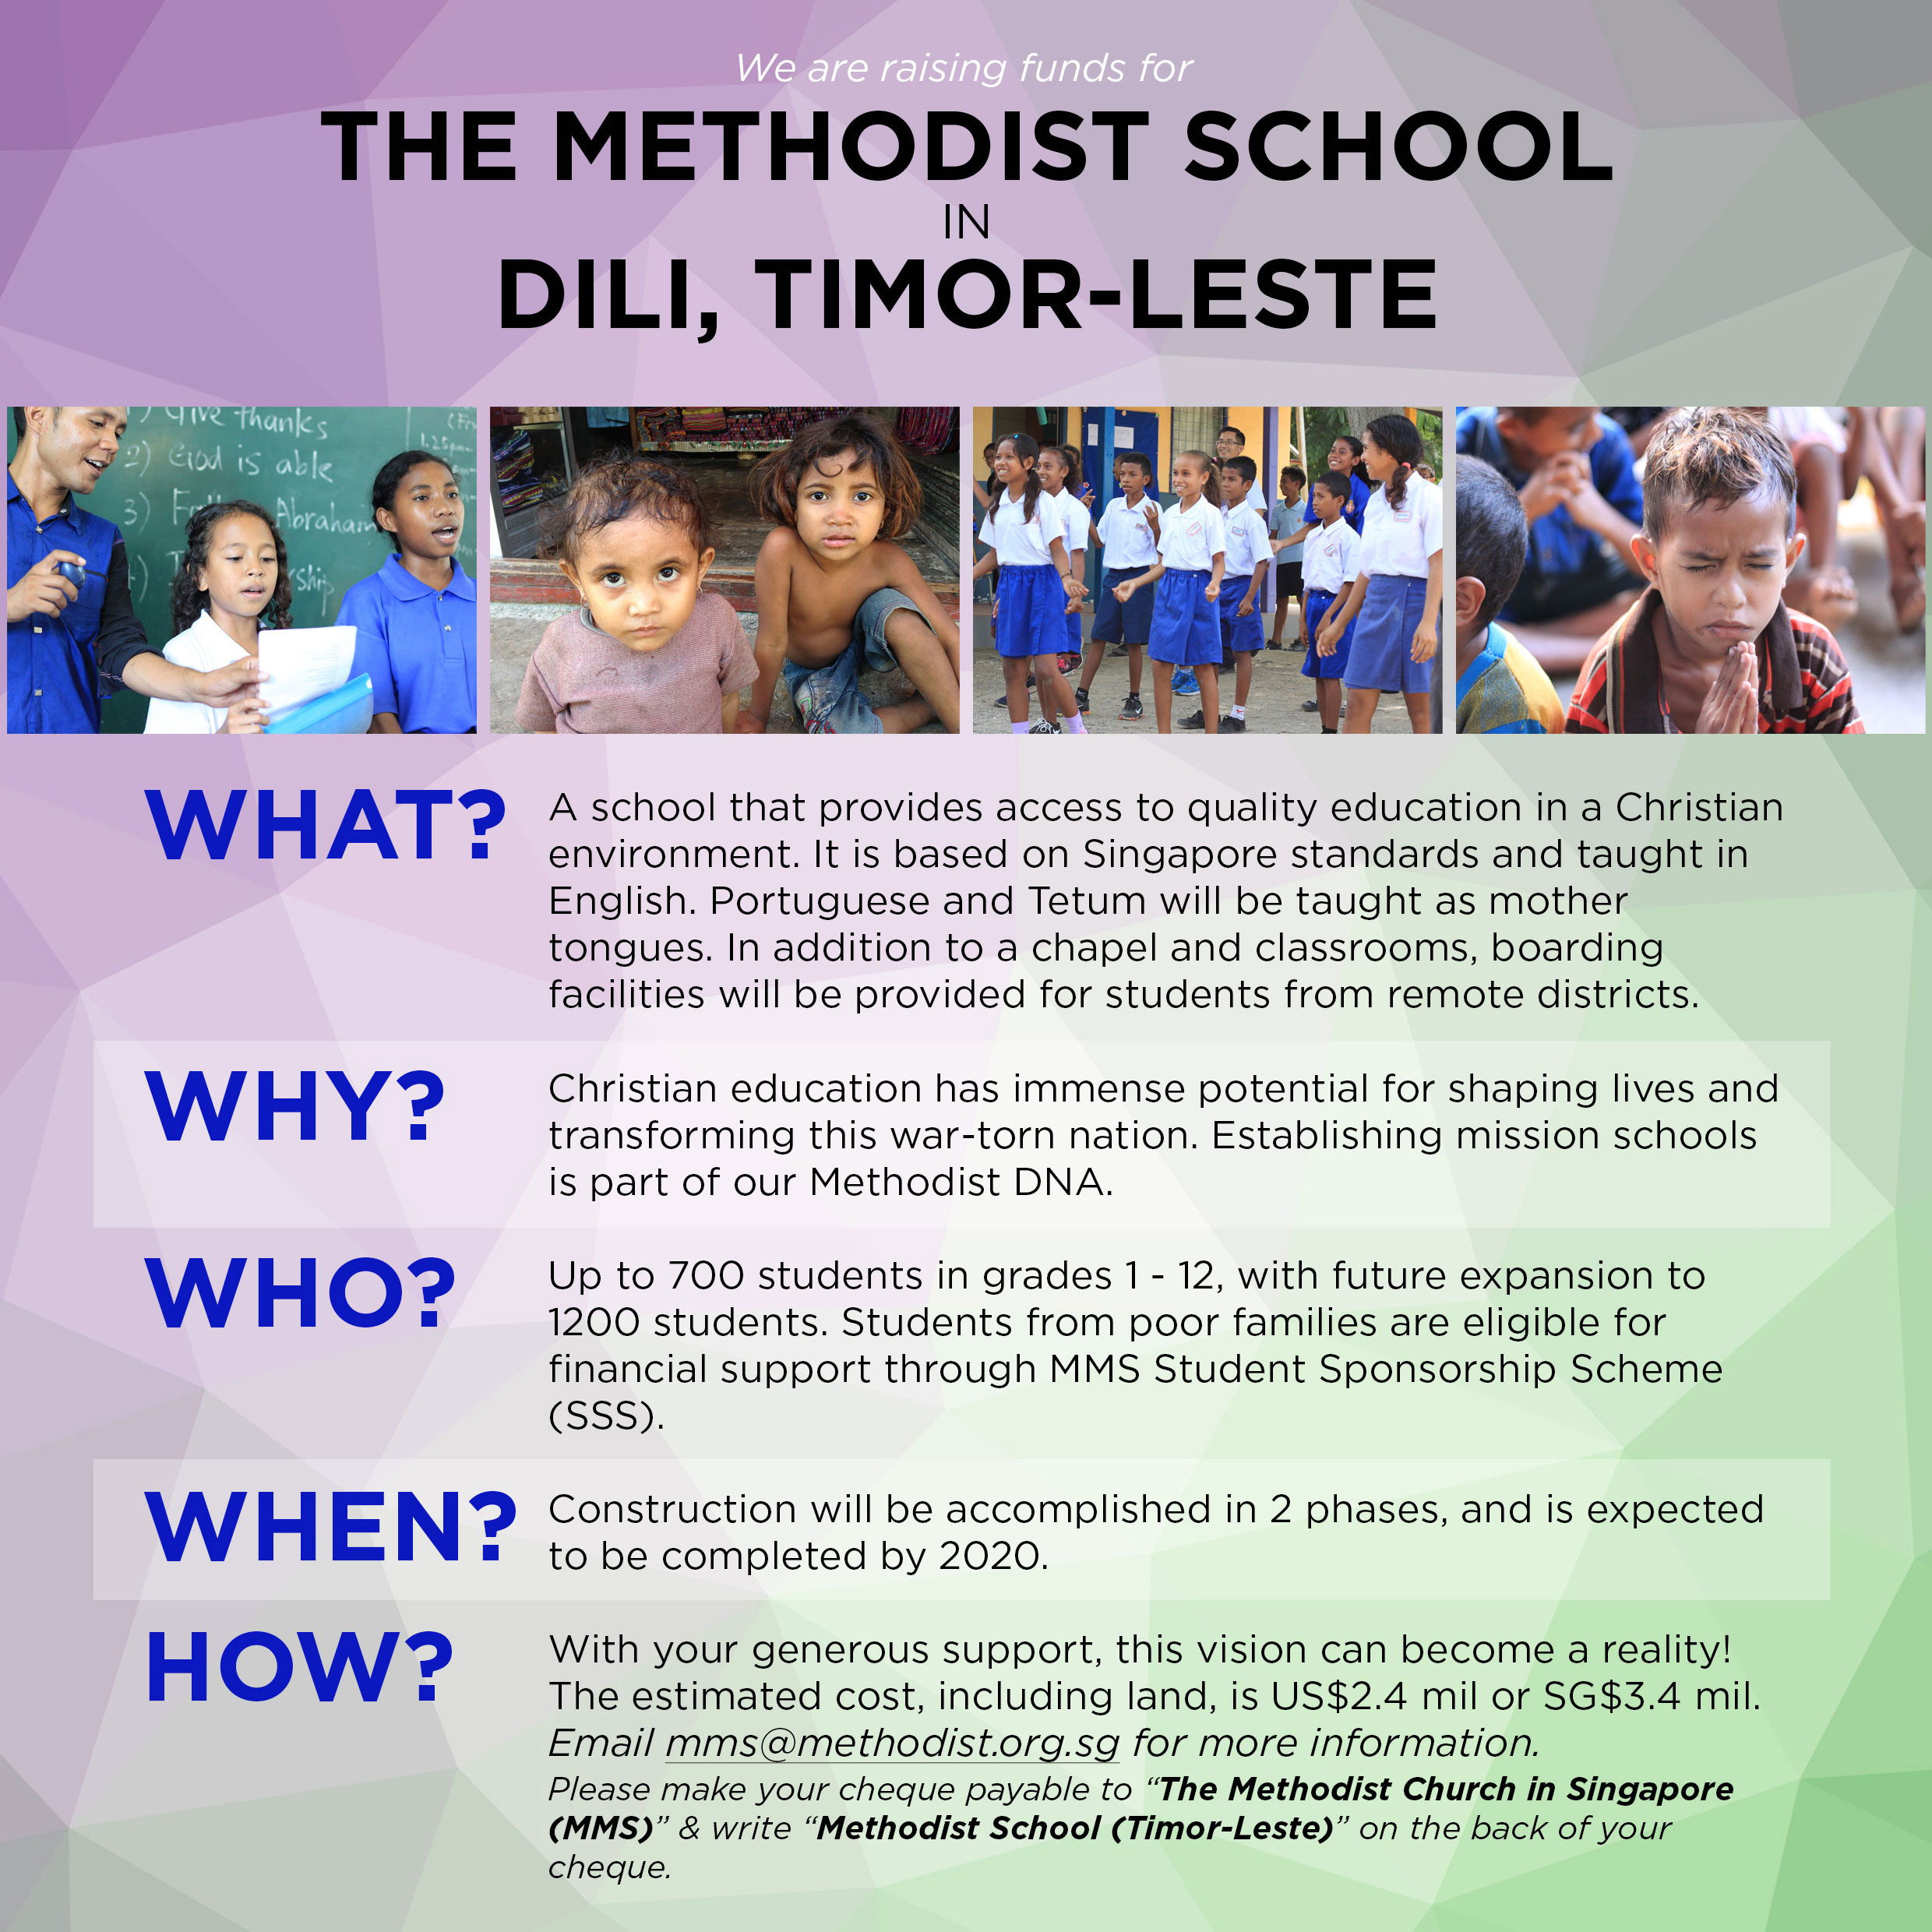 Methodist School (Timor-Leste)